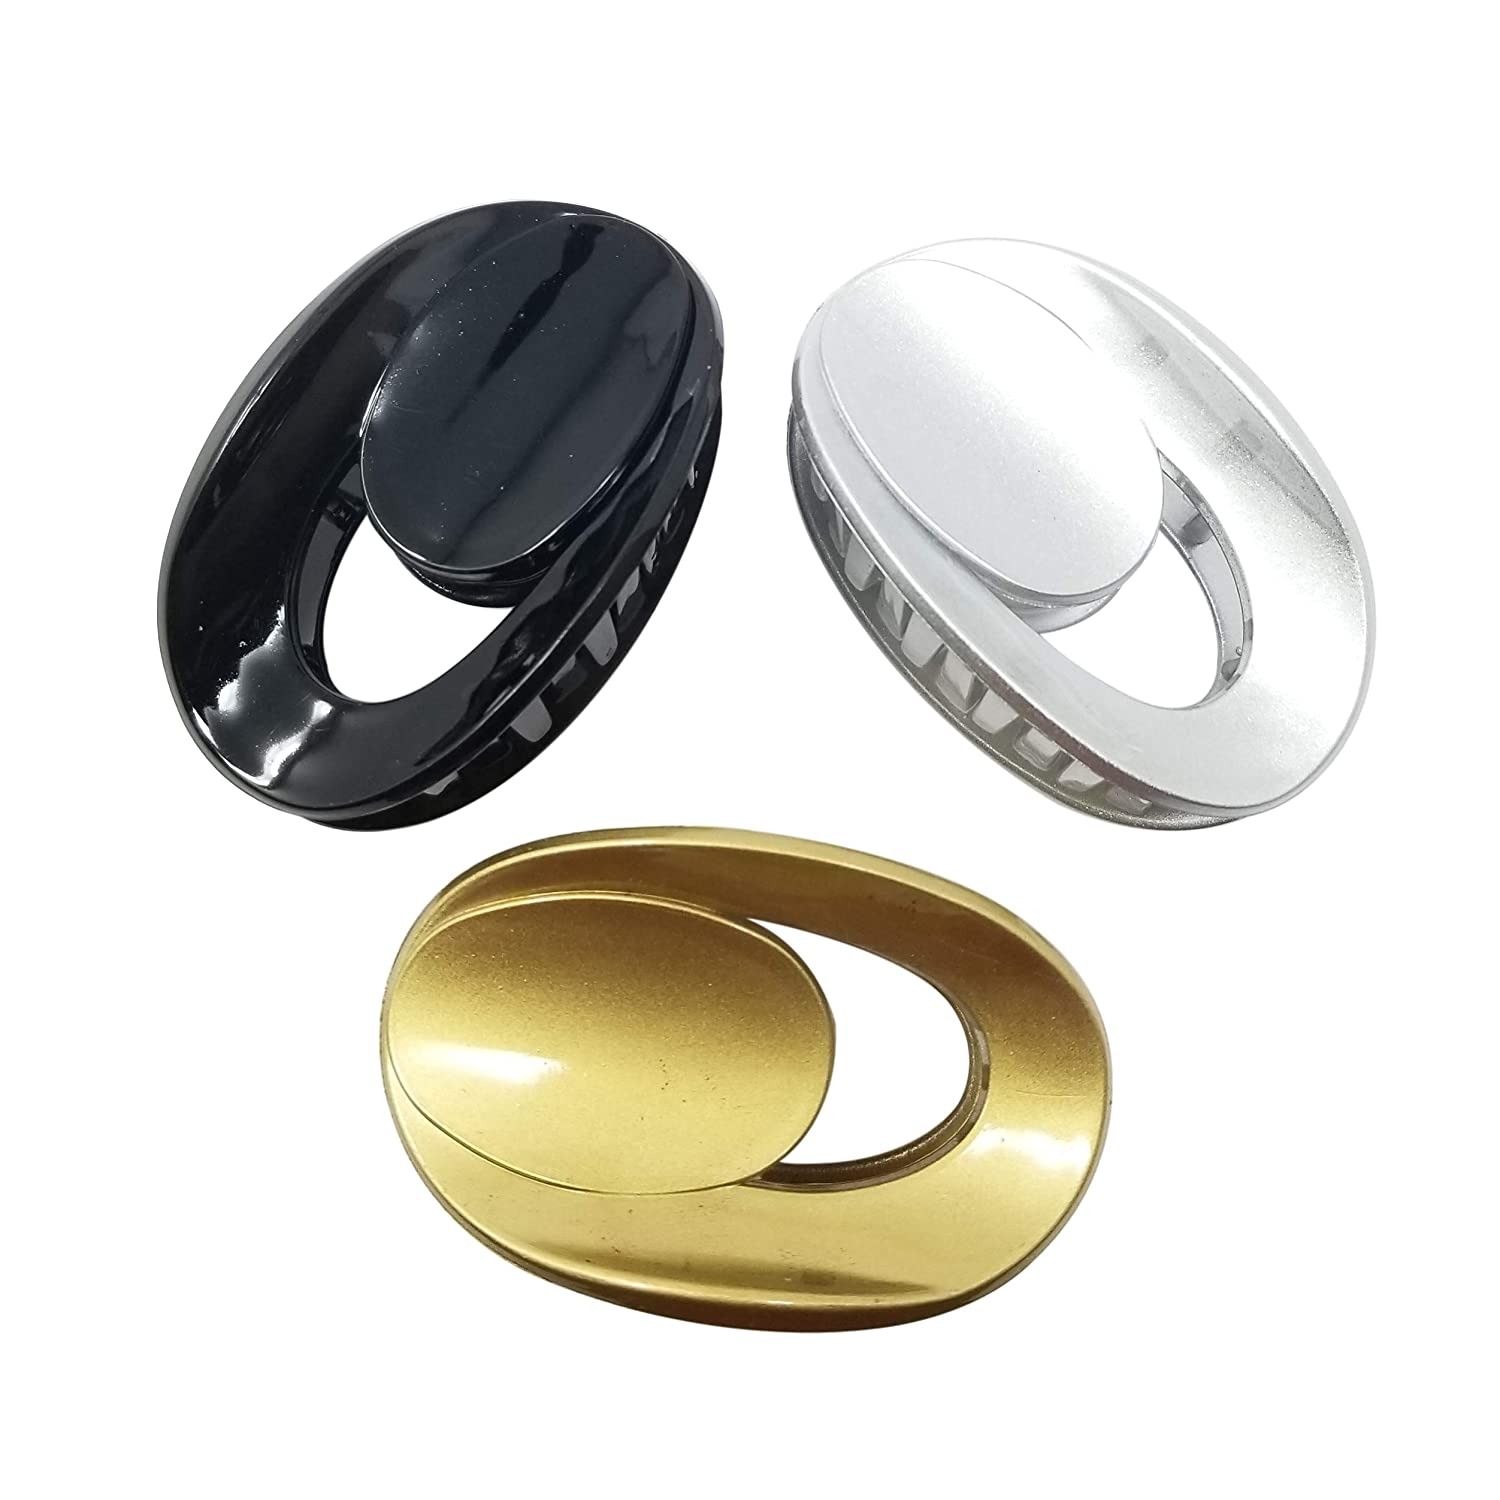 Evogirl Claw Clip Oval Shape No Slip Grip Black, Silver, Golden, Medium, For Women/Girls Reasonable Brands